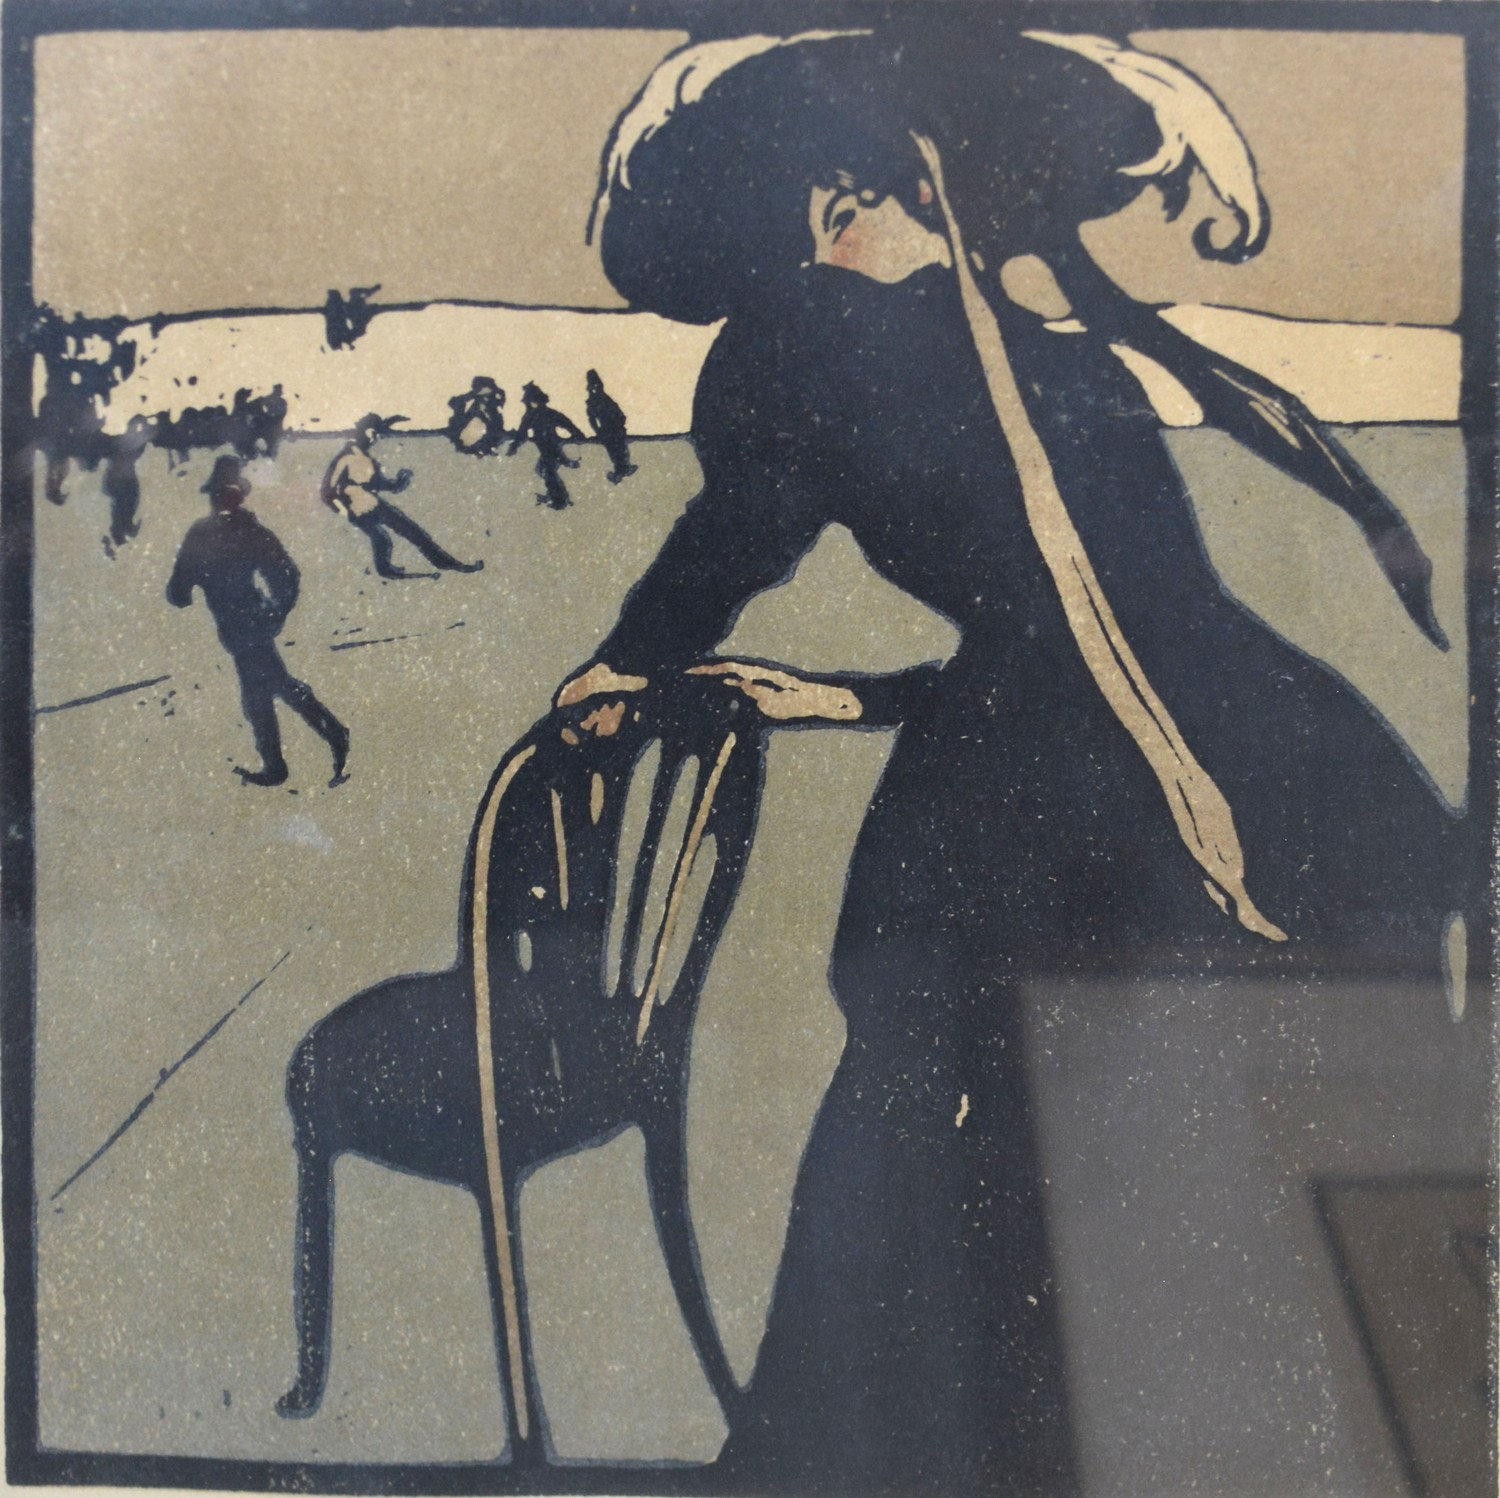 Sir William Nicholson A Group of Three Lithographs from The Almanac of Twelve Sports to include Golf - Image 3 of 4